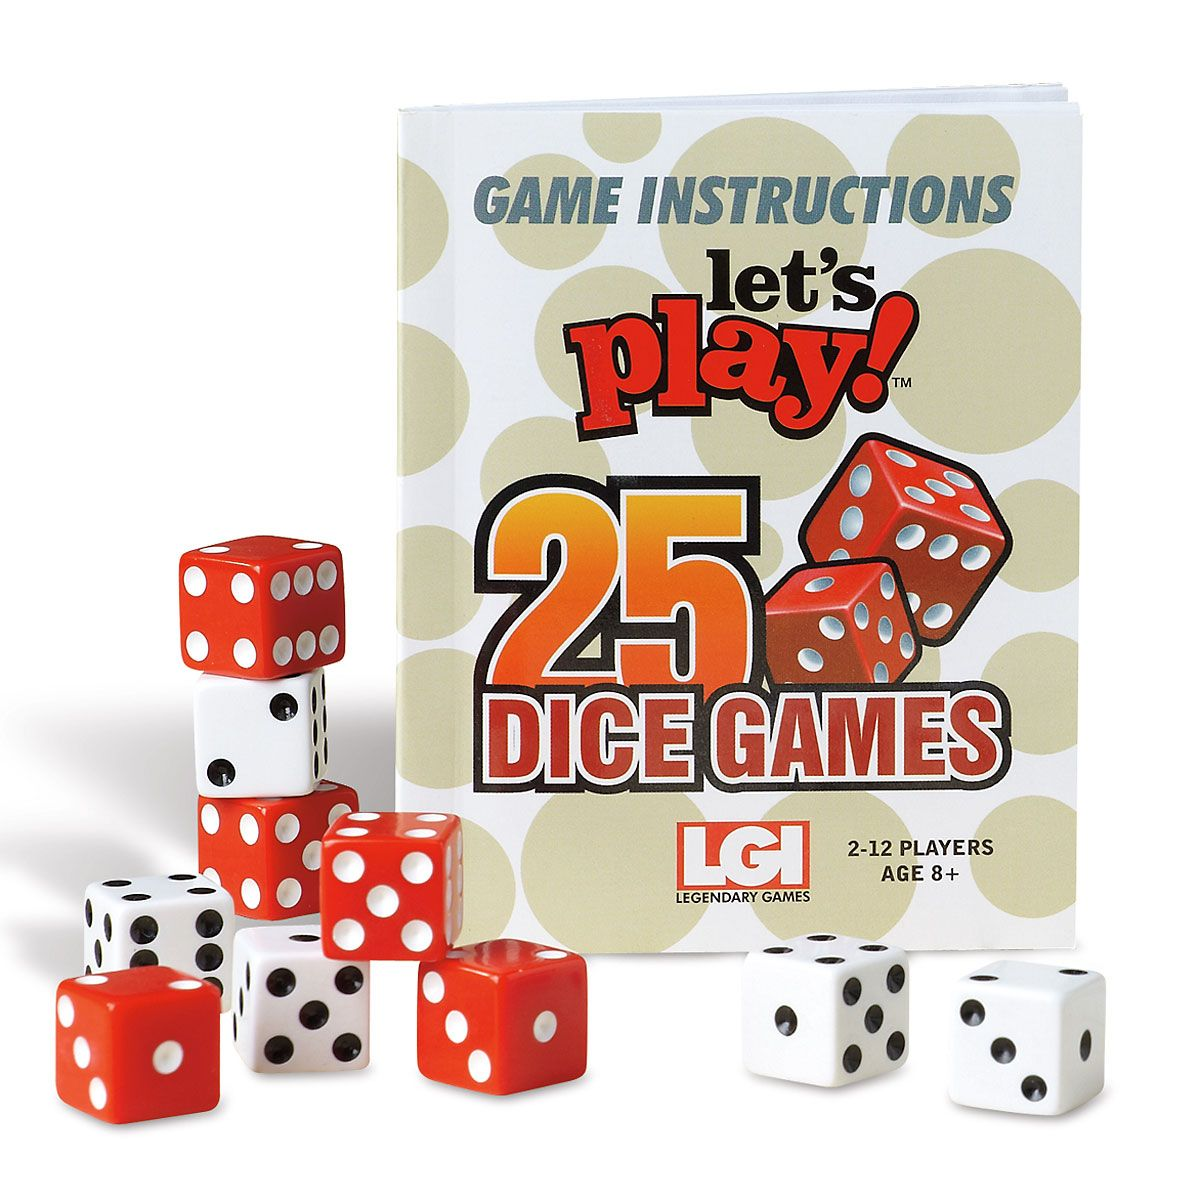 Let's Play 25 Dice Games